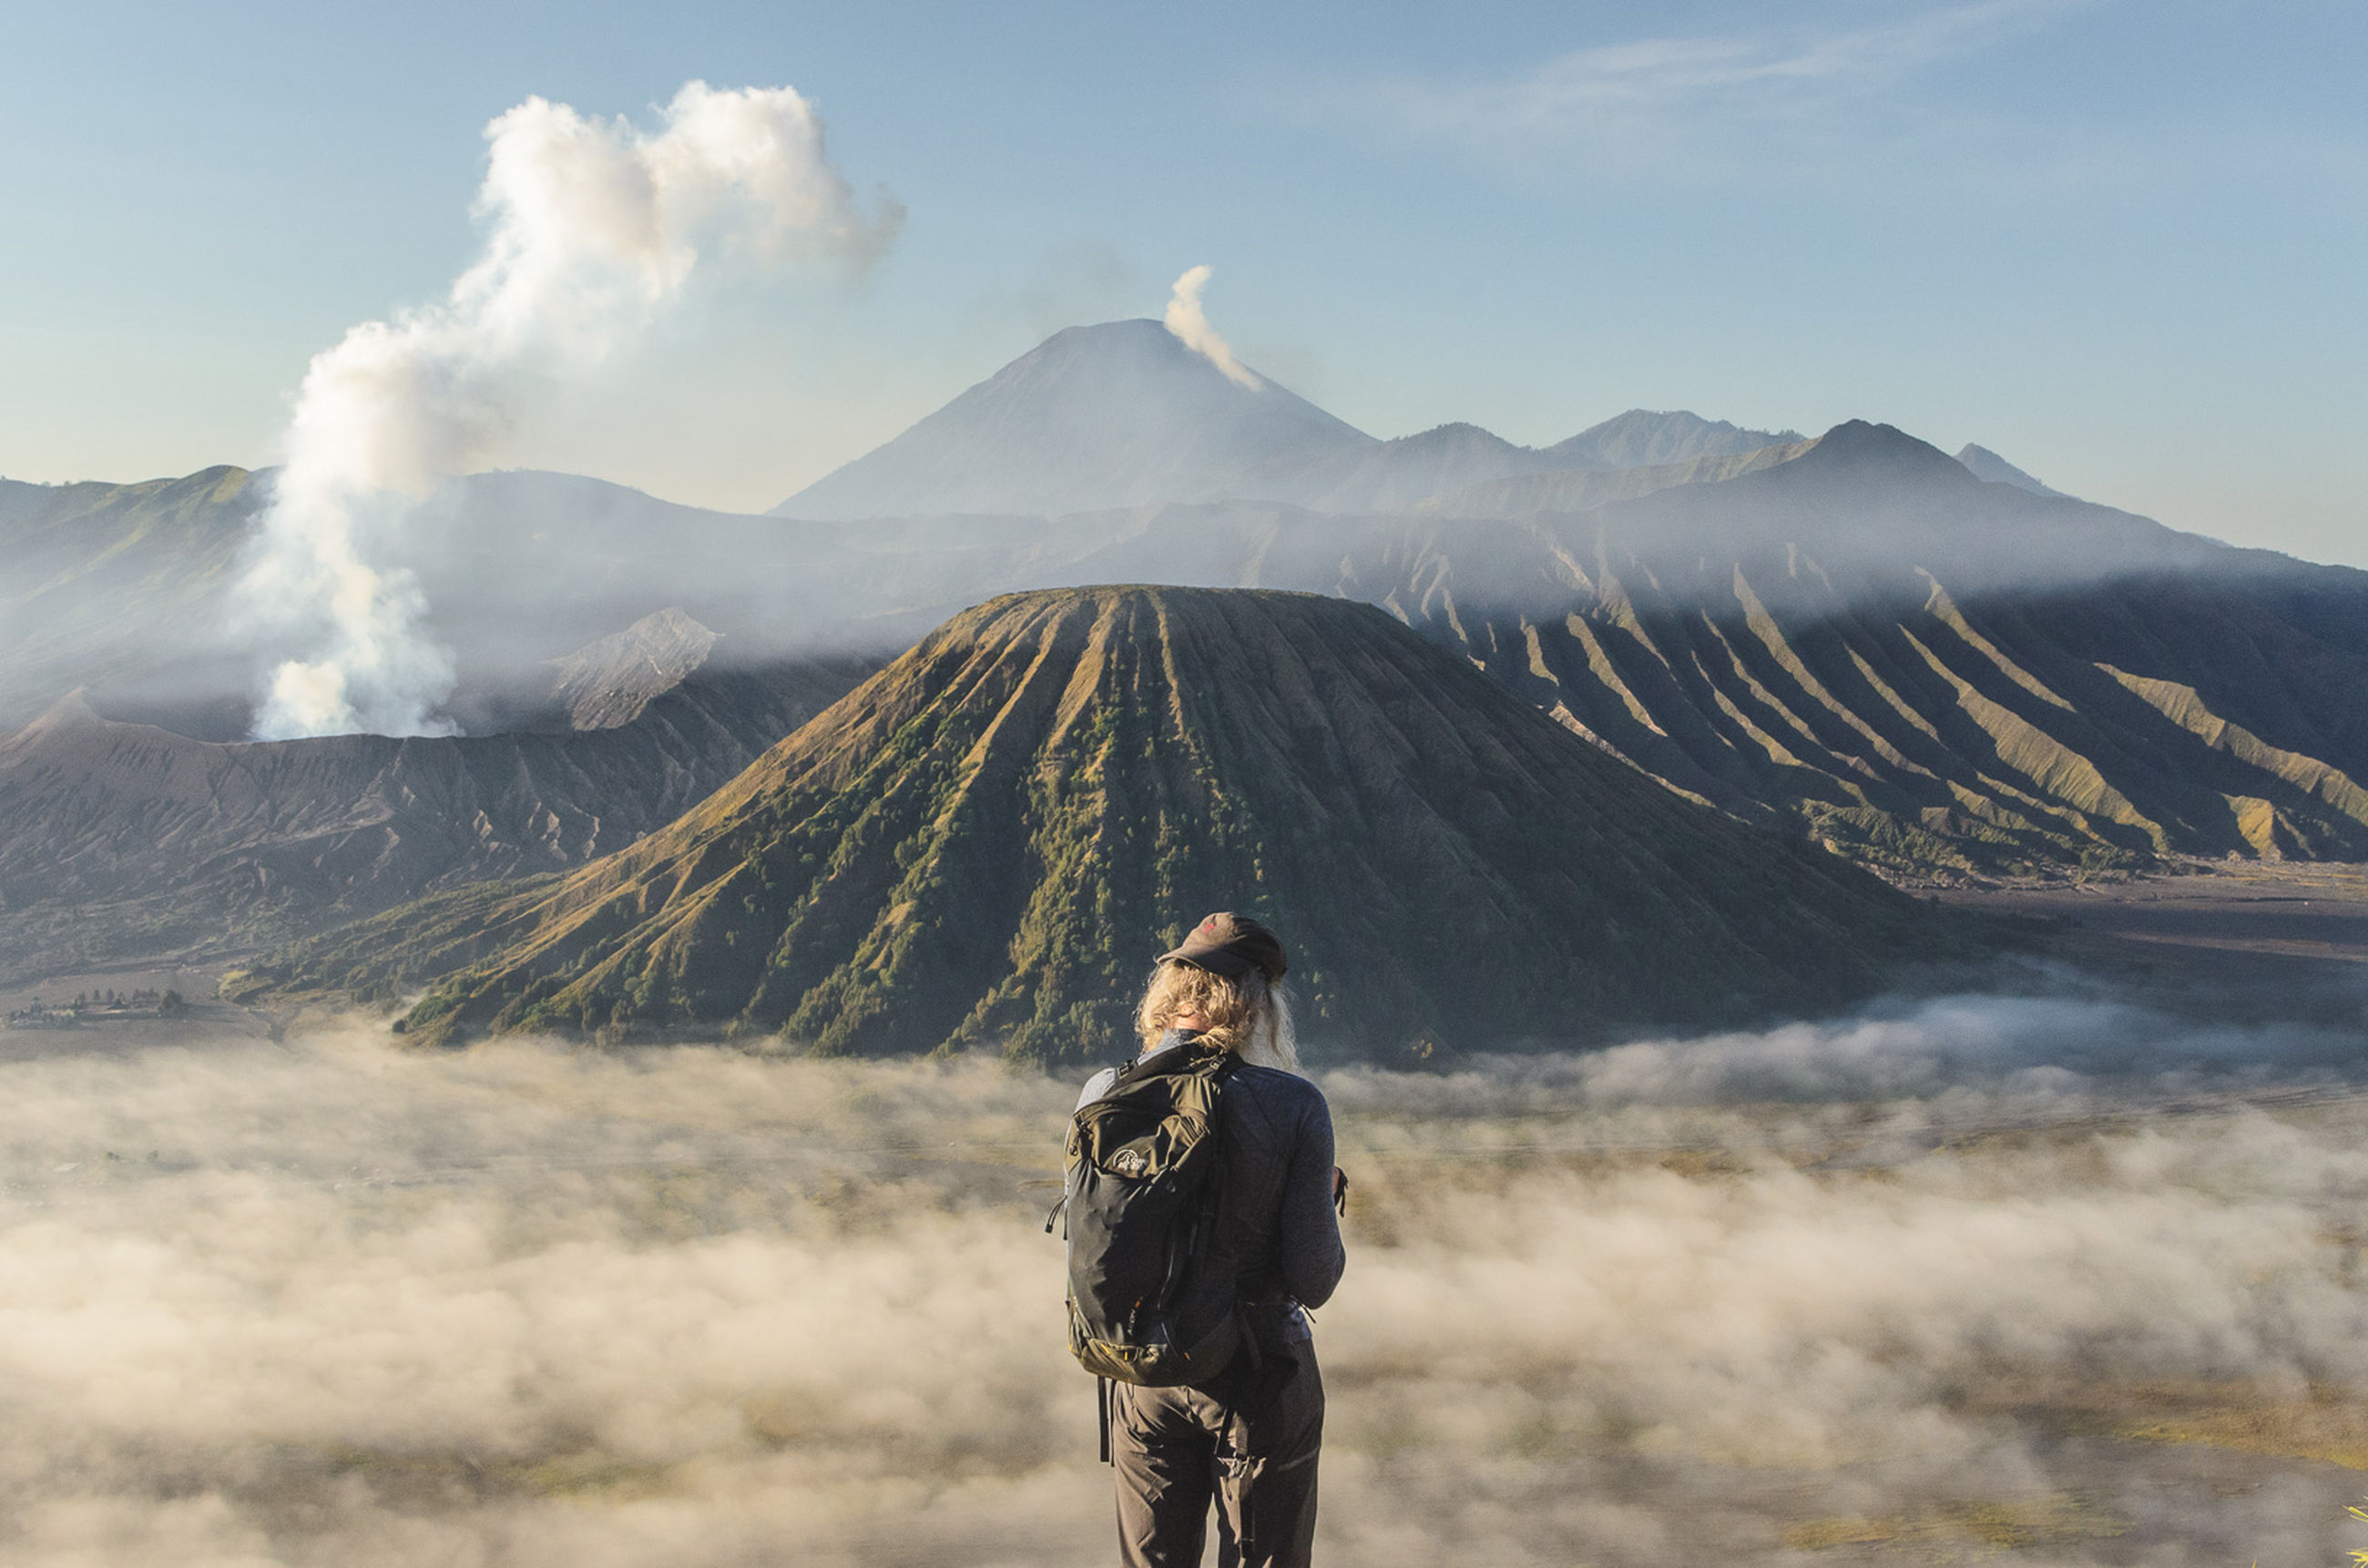 mountain, scenics - nature, beauty in nature, leisure activity, one person, non-urban scene, standing, real people, tranquil scene, tranquility, lifestyles, sky, young adult, idyllic, nature, environment, volcano, smoke - physical structure, mountain range, outdoors, hairstyle